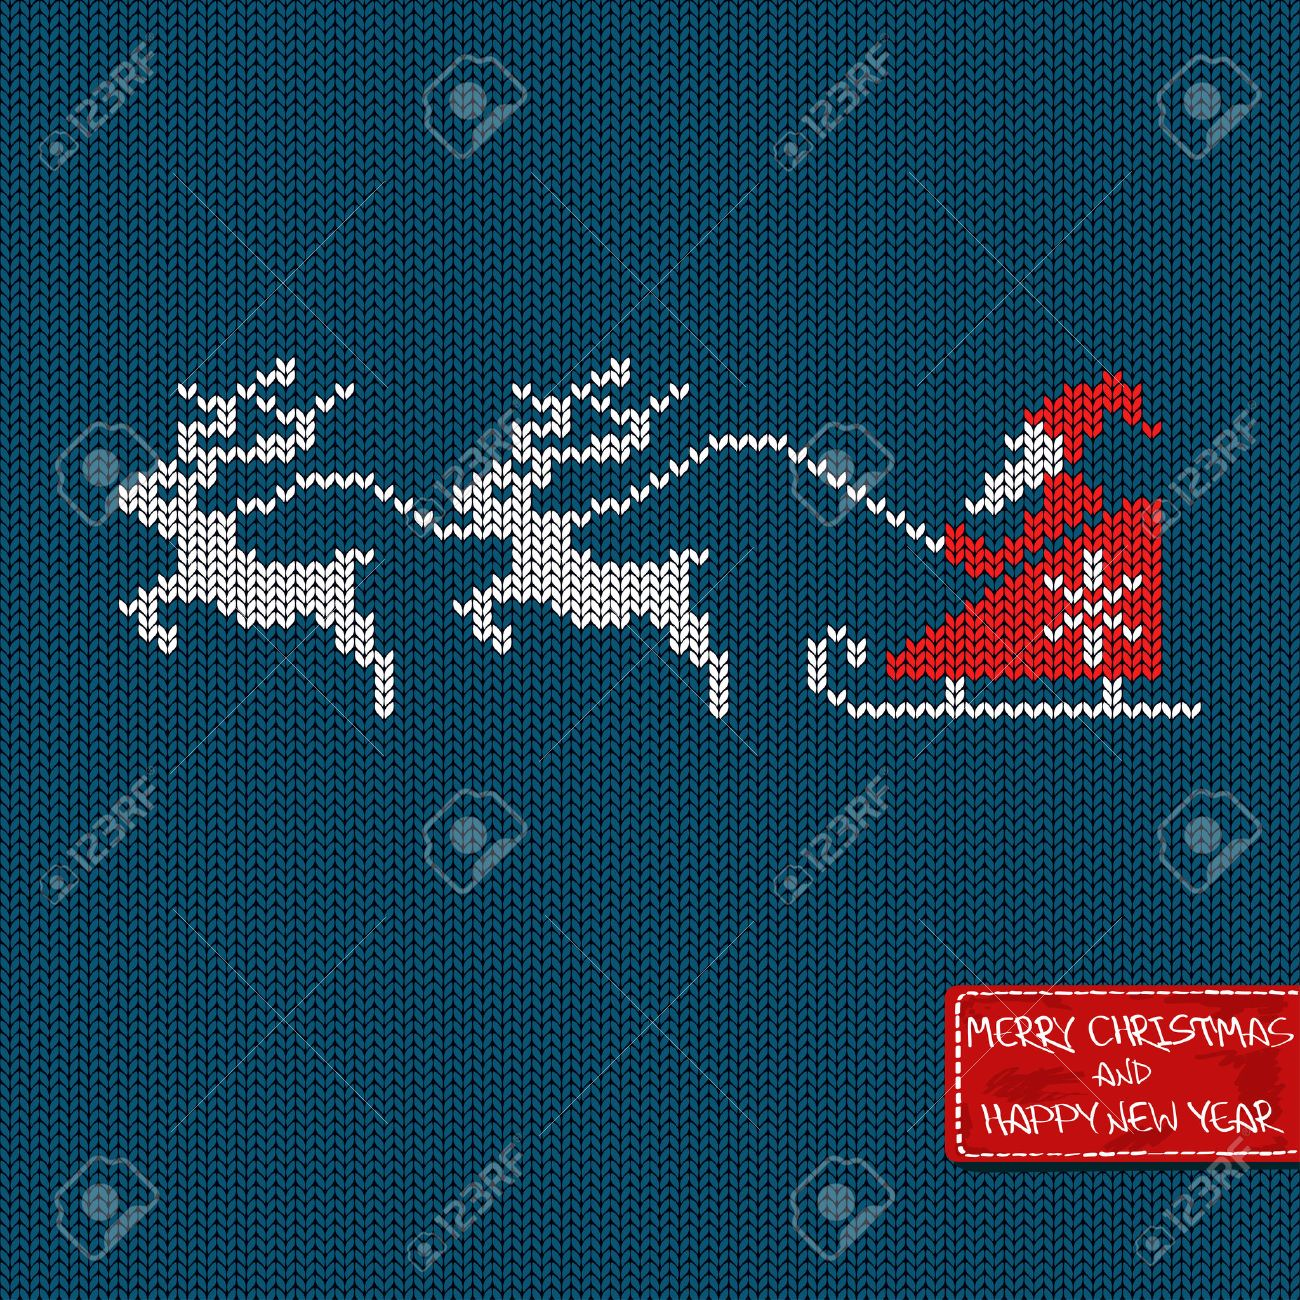 Christmas and New Year knitted pattern card with Santa in sleigh, deers and greeting tag - 23989200